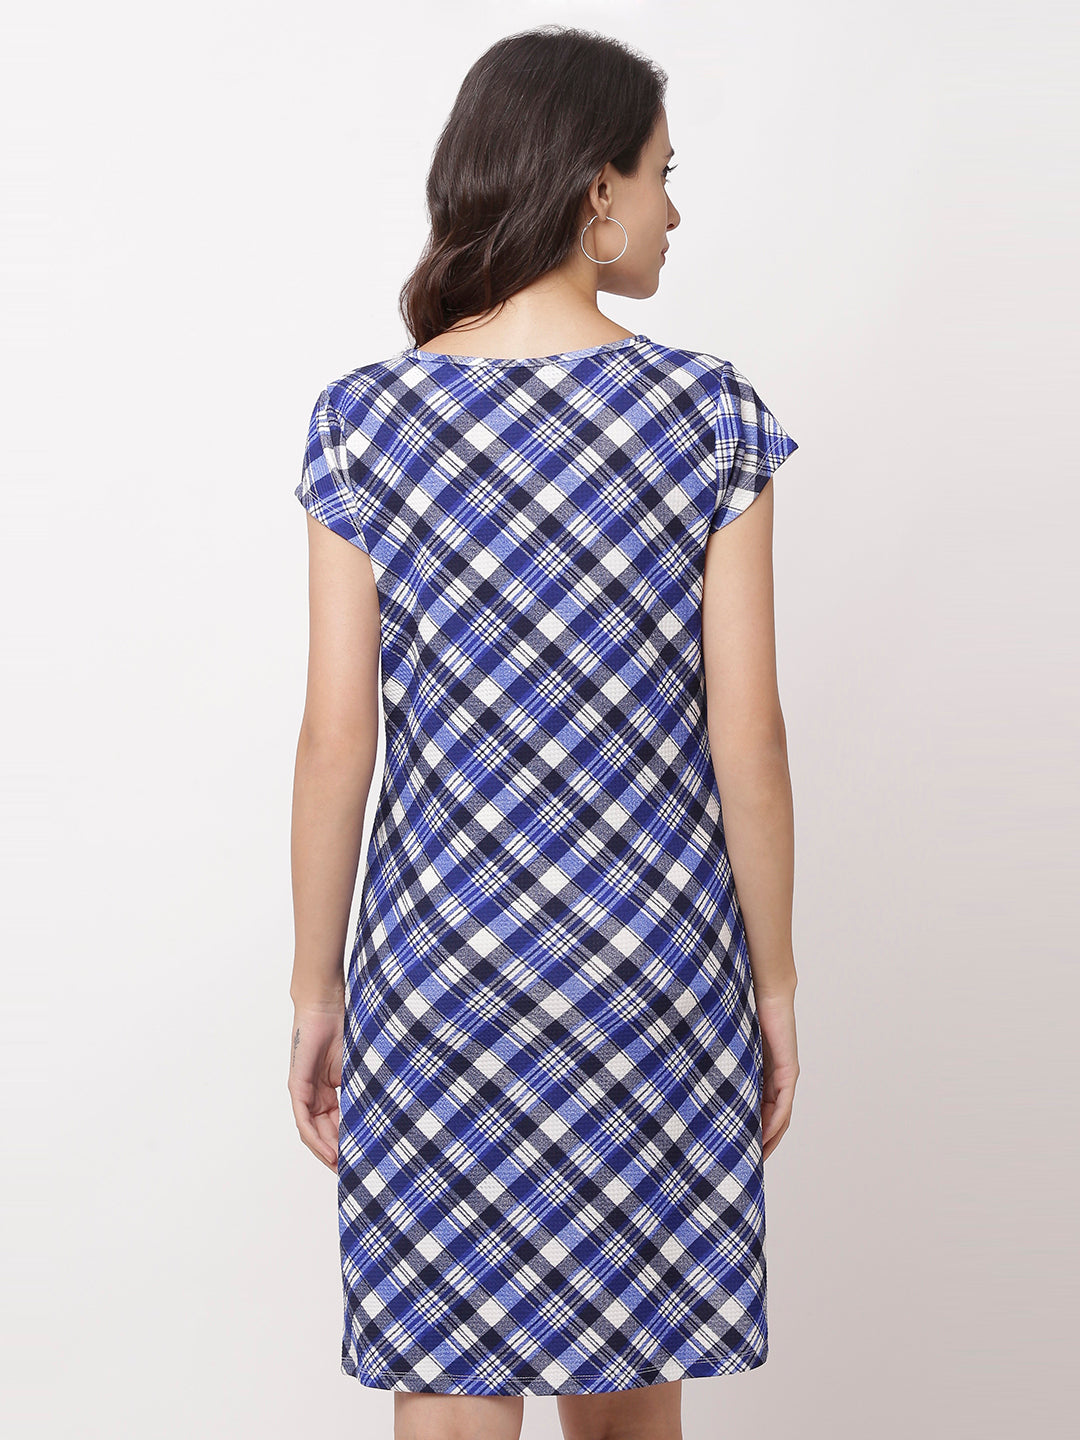 Globus Navy Blue Checked Casual Dress-3